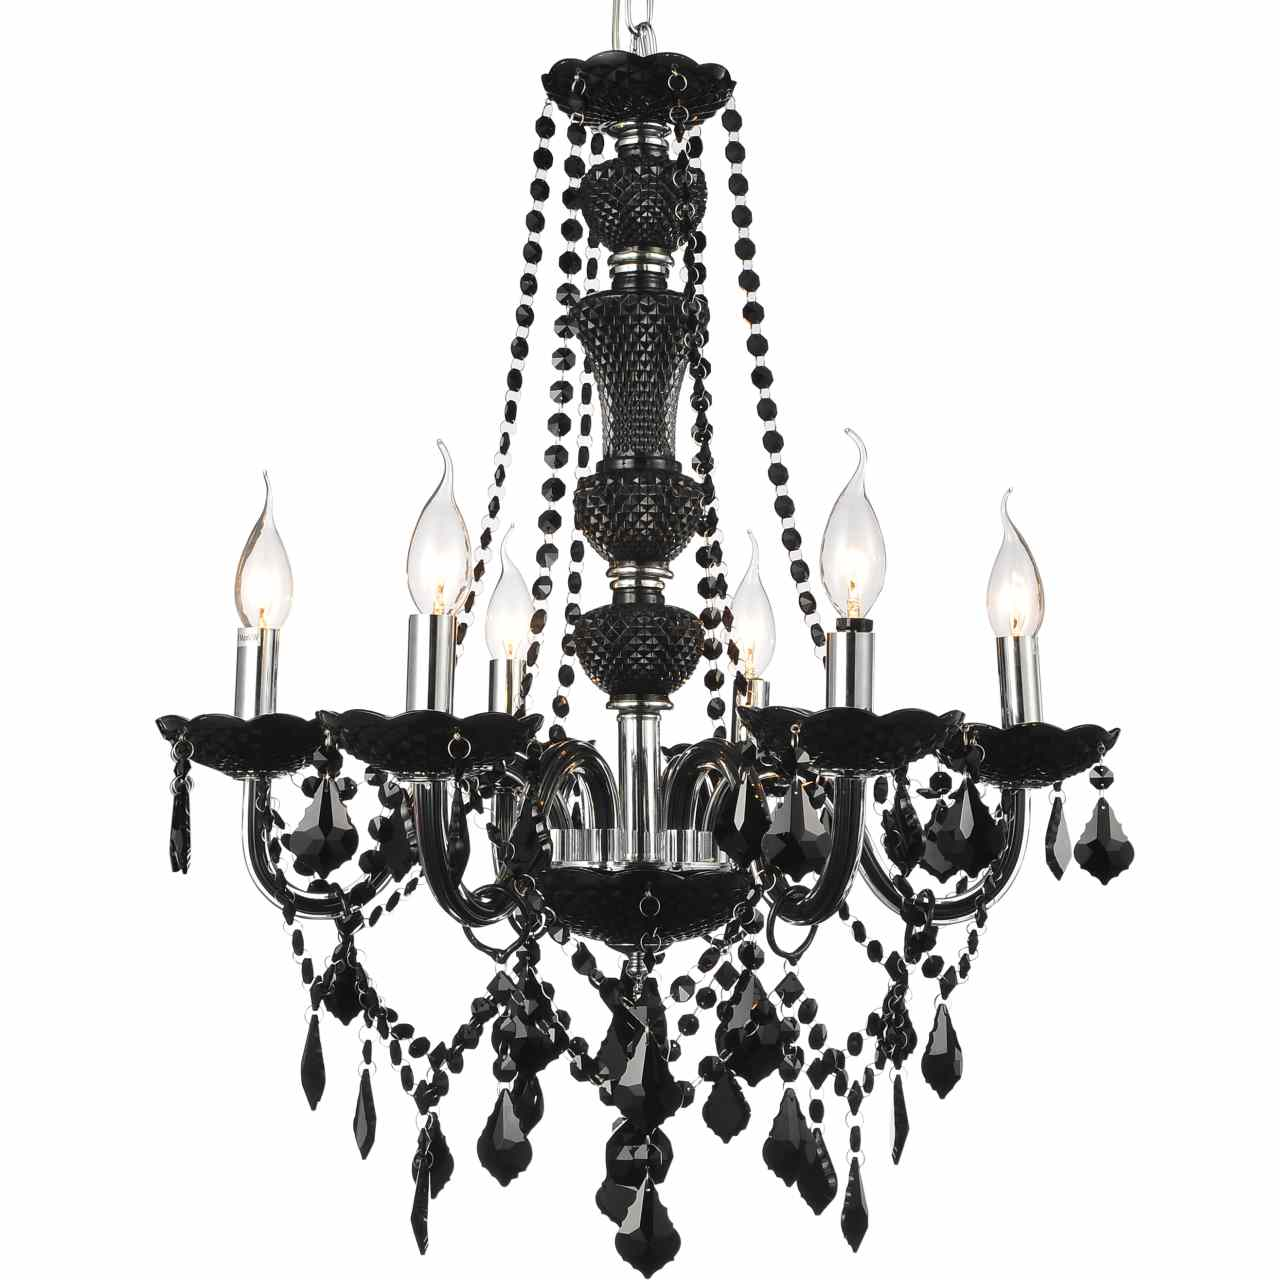 1280x1280 Brizzo Lighting Stores. 22 Victorian Traditional Crystal Round